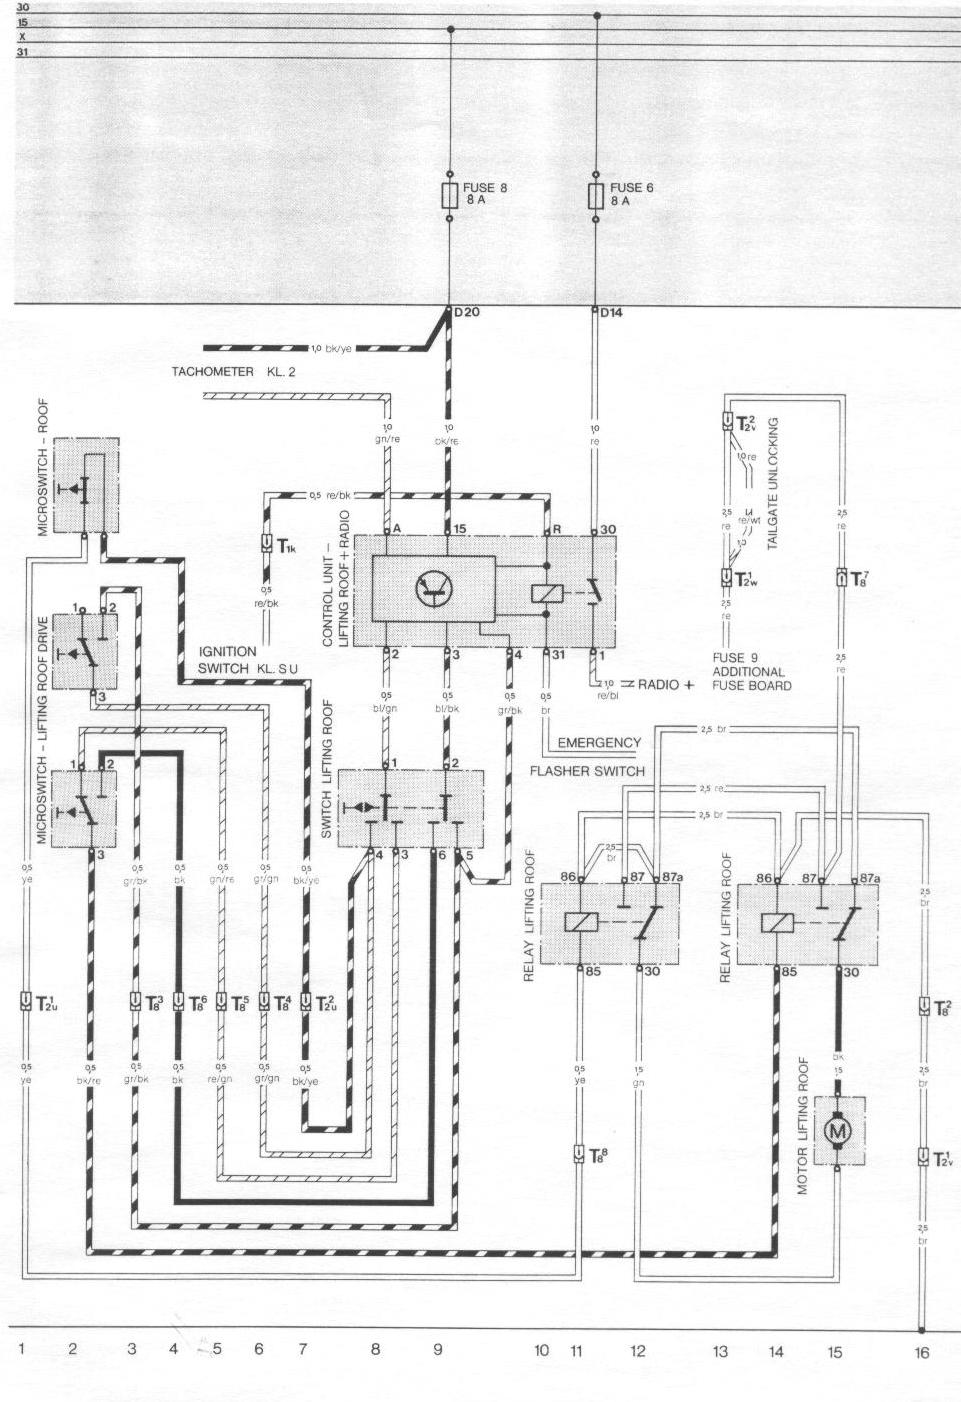 944_84_sunroof 1986 porsche 944 wiring diagram wiring diagram simonand 1984 porsche 911 wiring diagram at creativeand.co